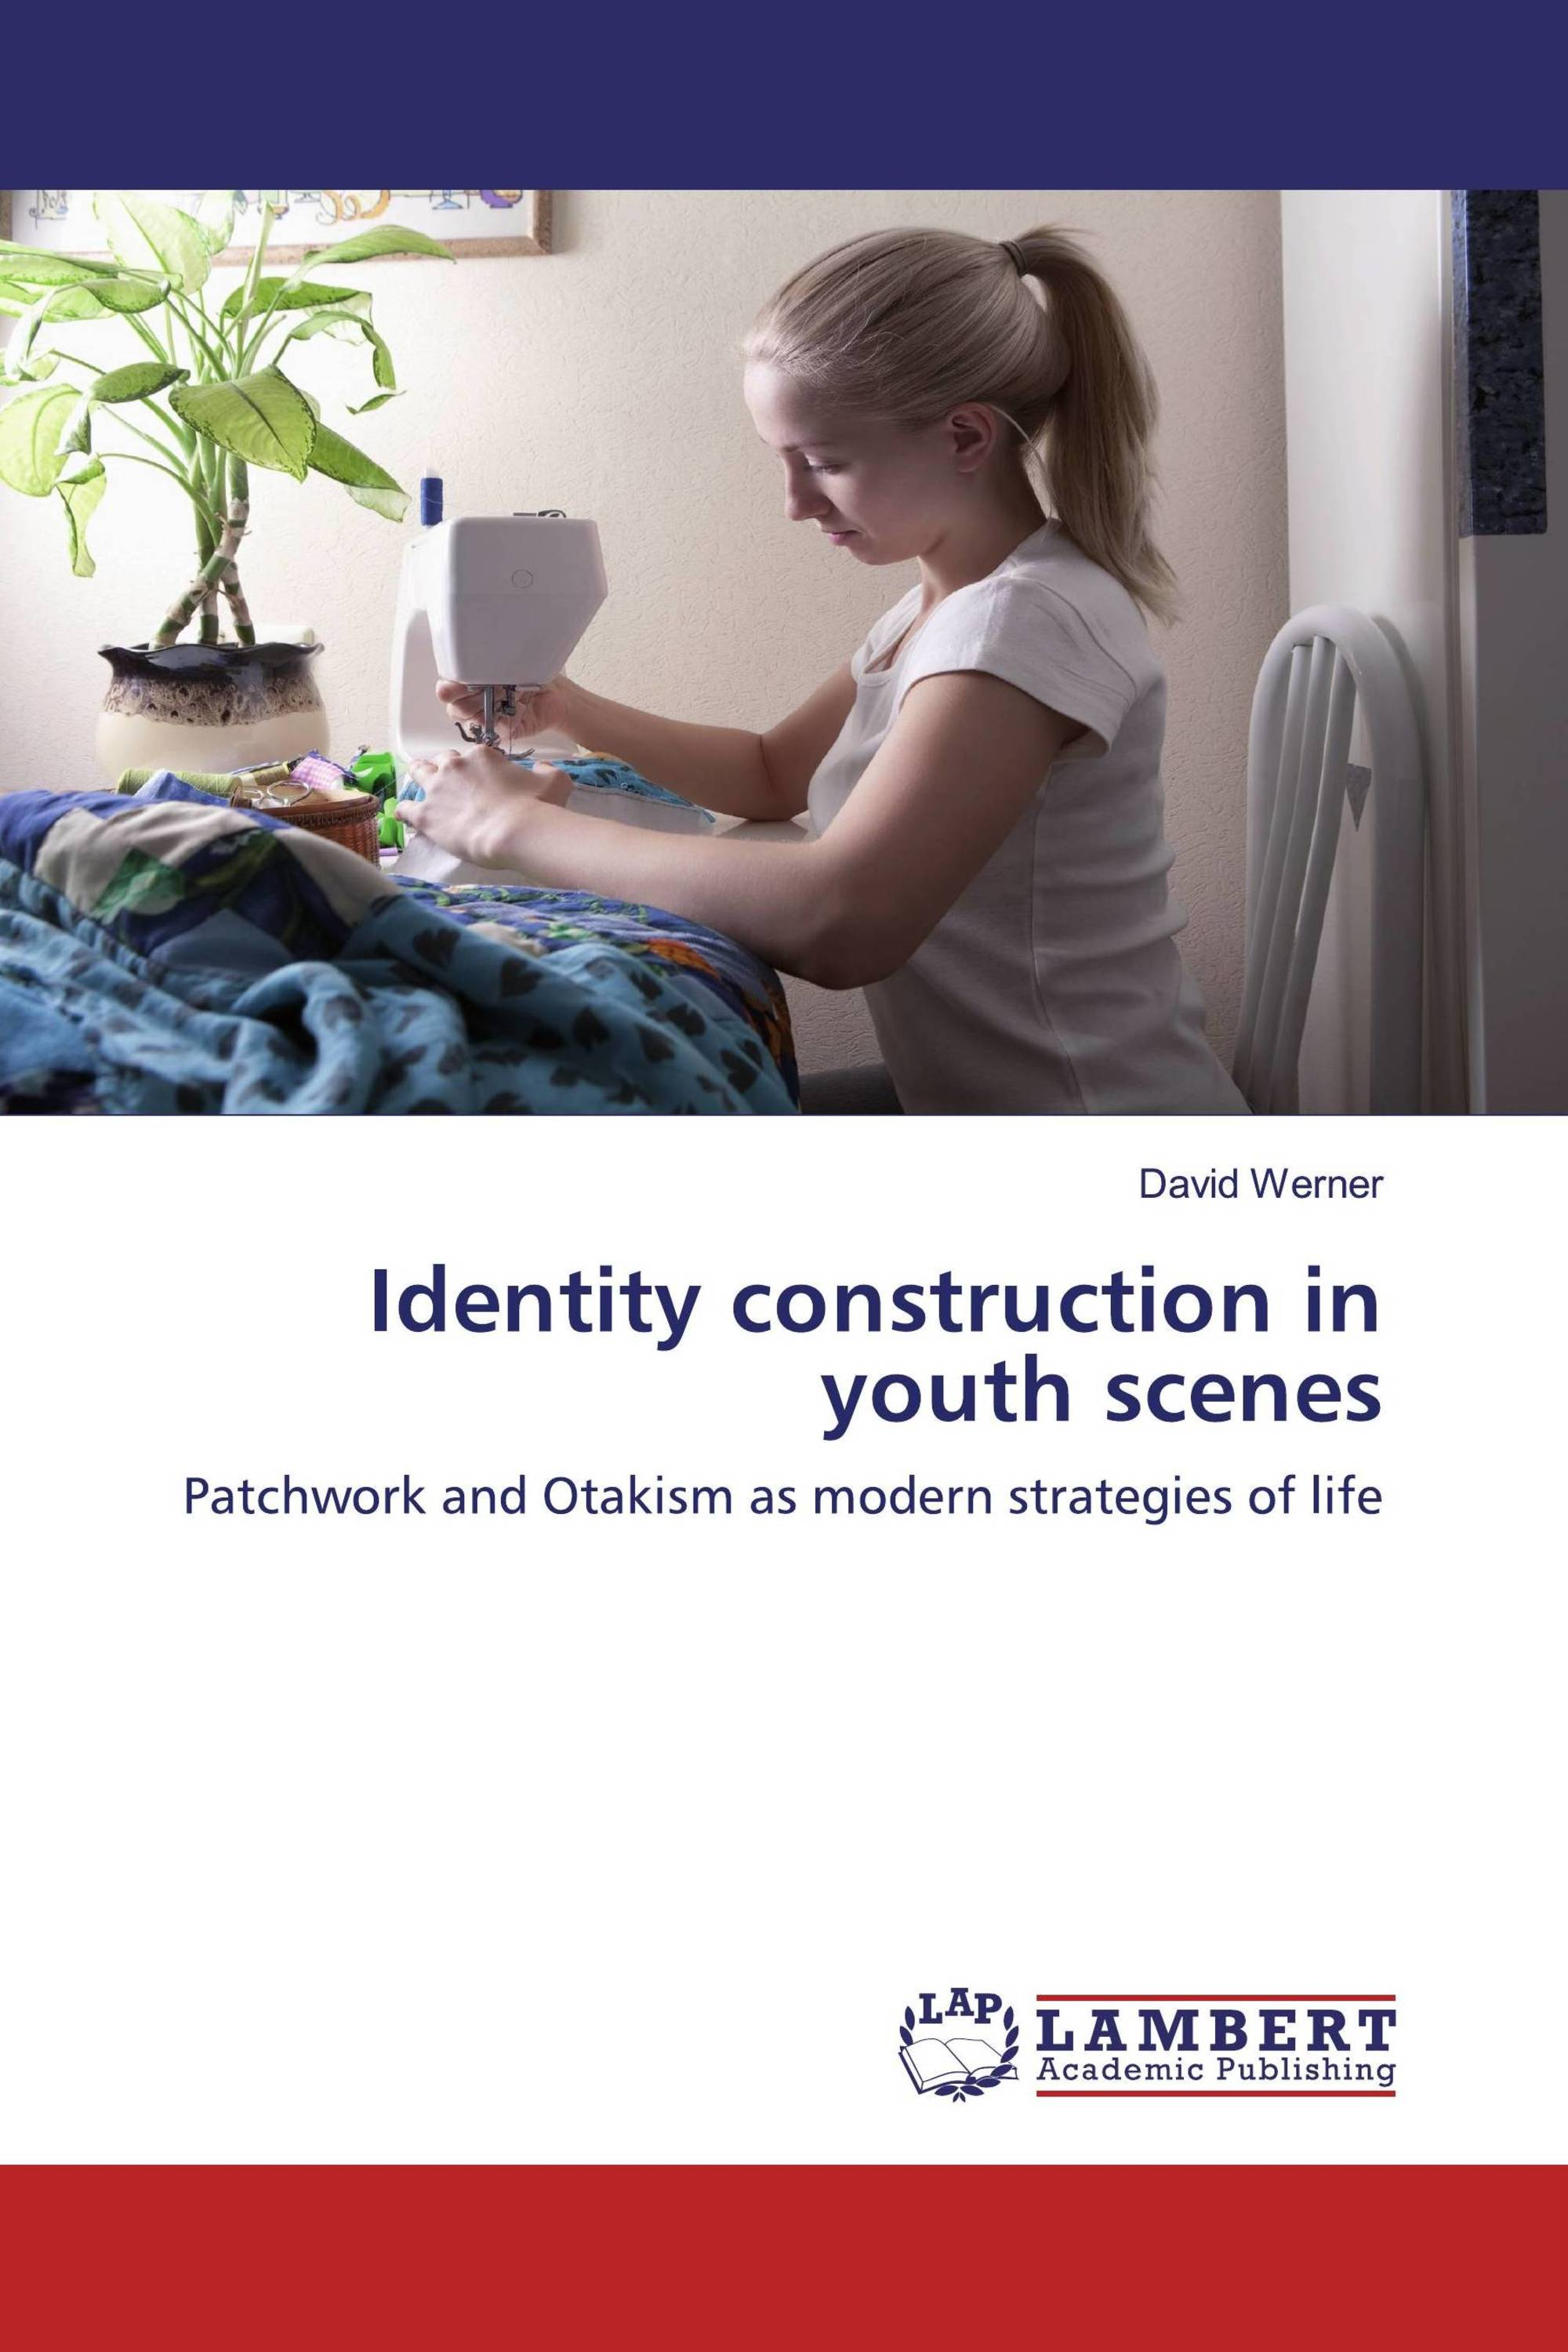 Identity construction in youth scenes